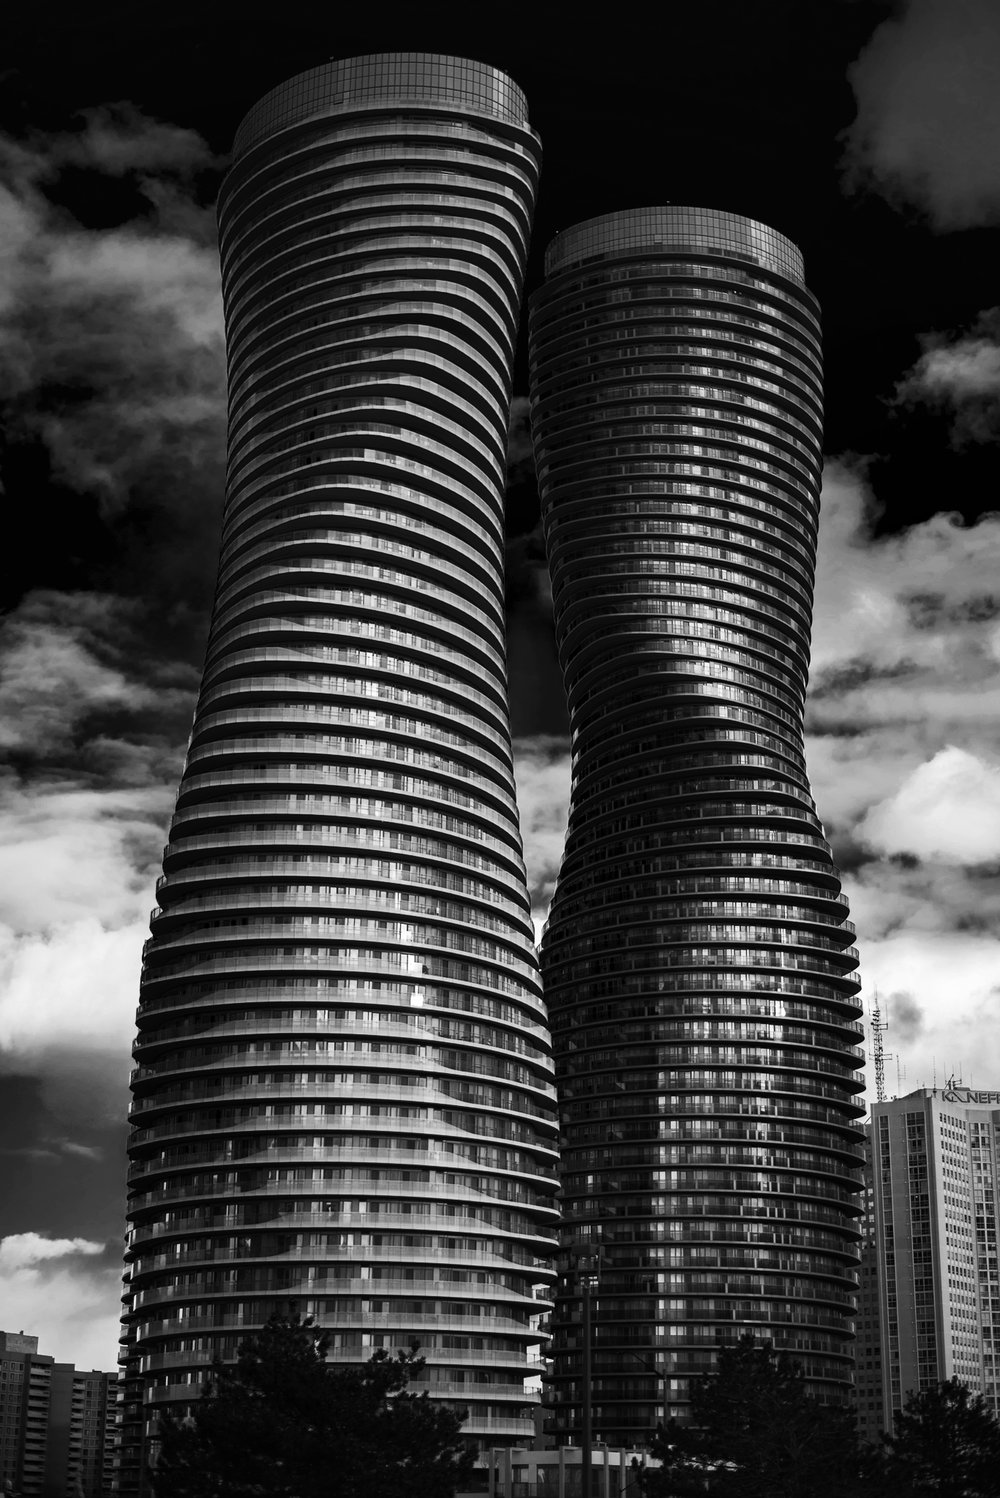 Marilyn Monroe Towers - Absolute World - Marek Michalek 002.JPG